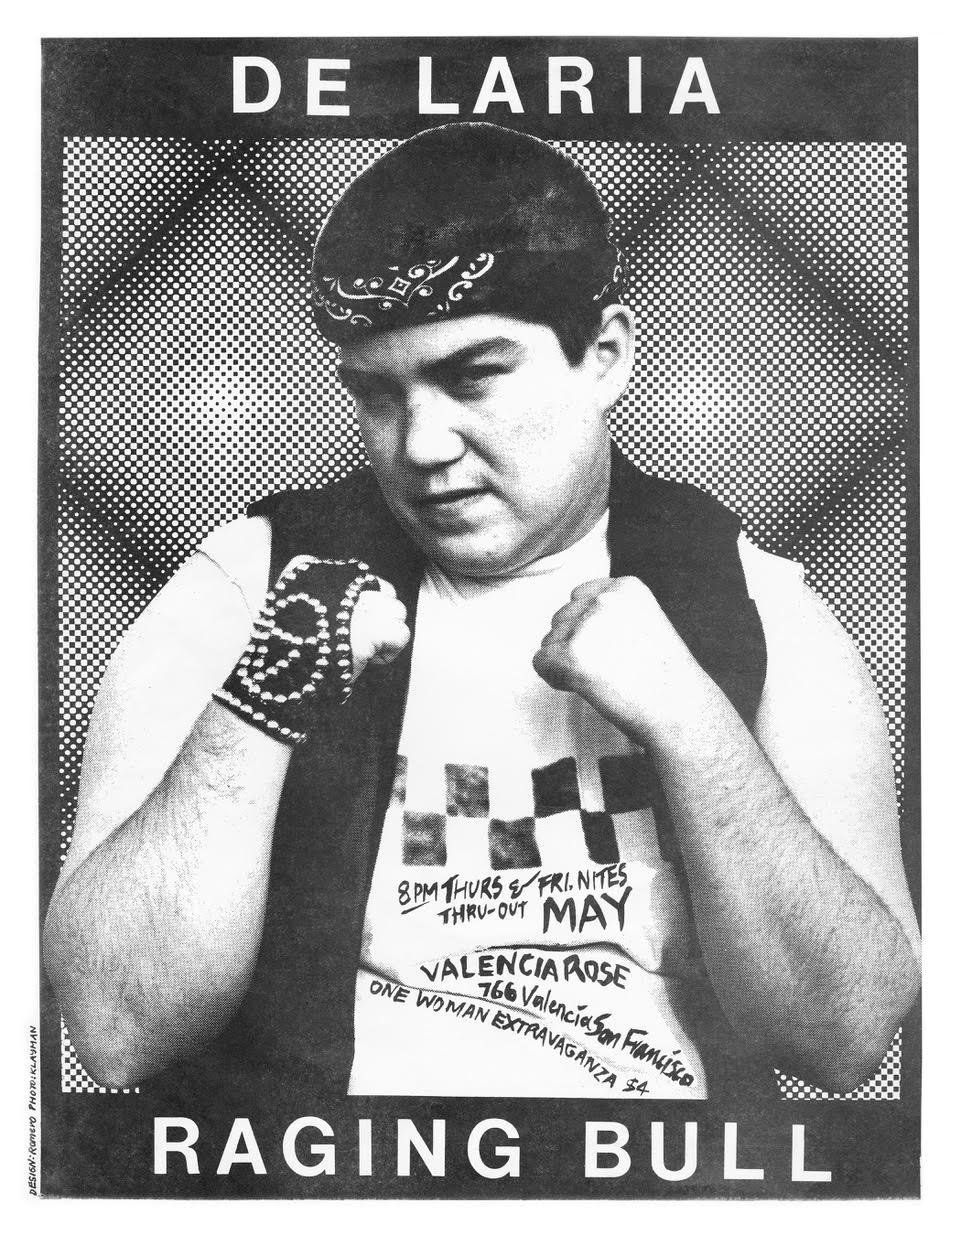 lea delaria we should be celebrating who we are instead of licking 1970s Photography Rural America a poster for delaria s first solo show